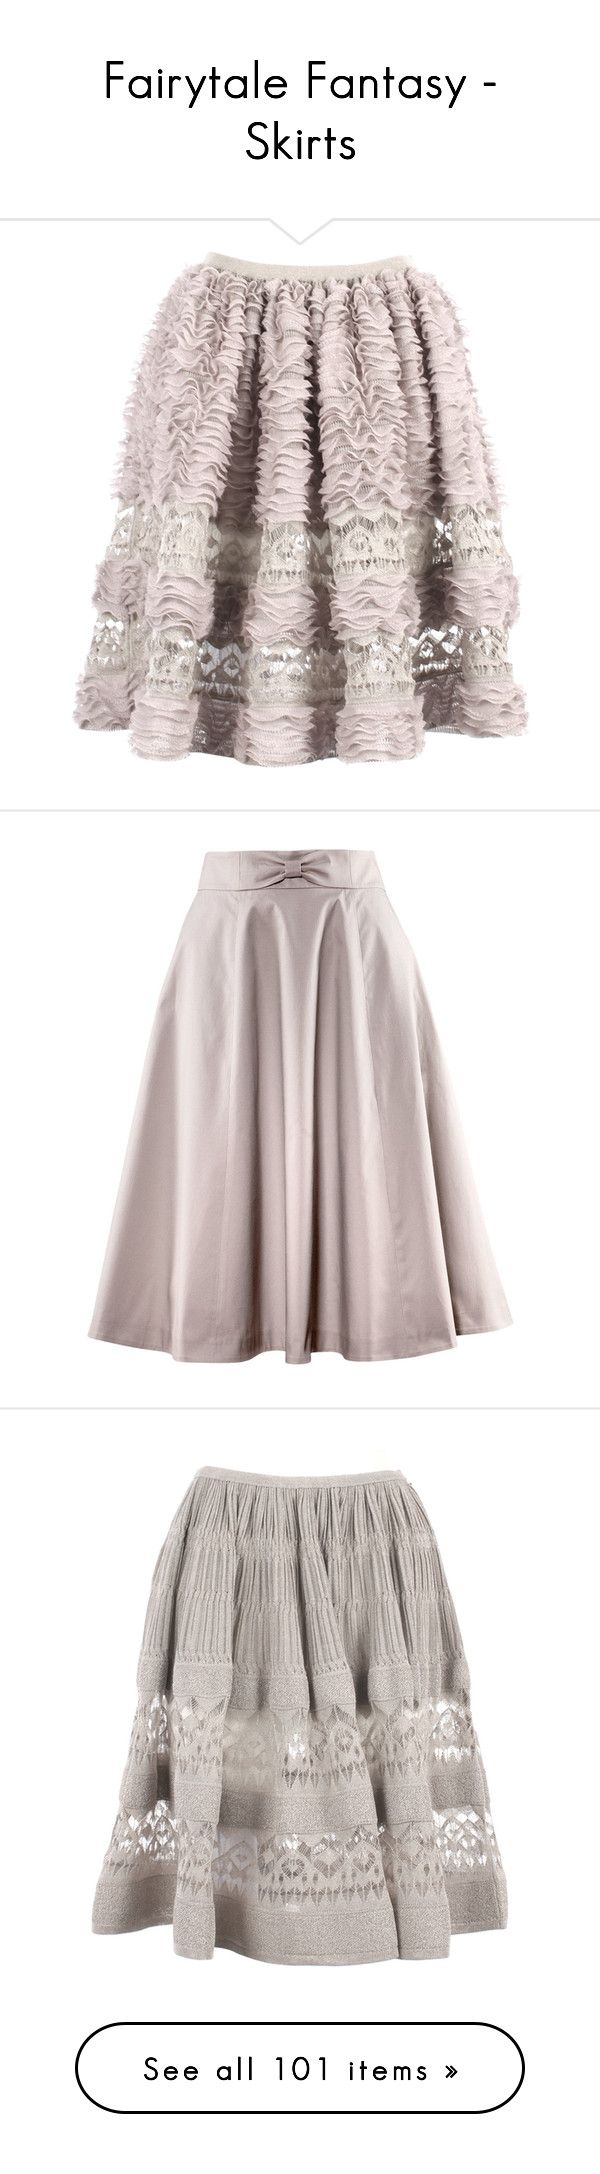 """""""Fairytale Fantasy - Skirts"""" by metalheavy ❤ liked on Polyvore featuring skirts, bottoms, saias, gonne, alaia skirt, ruffle skirt, pink ruffle skirt, frilly skirt, pink skirt and faldas"""